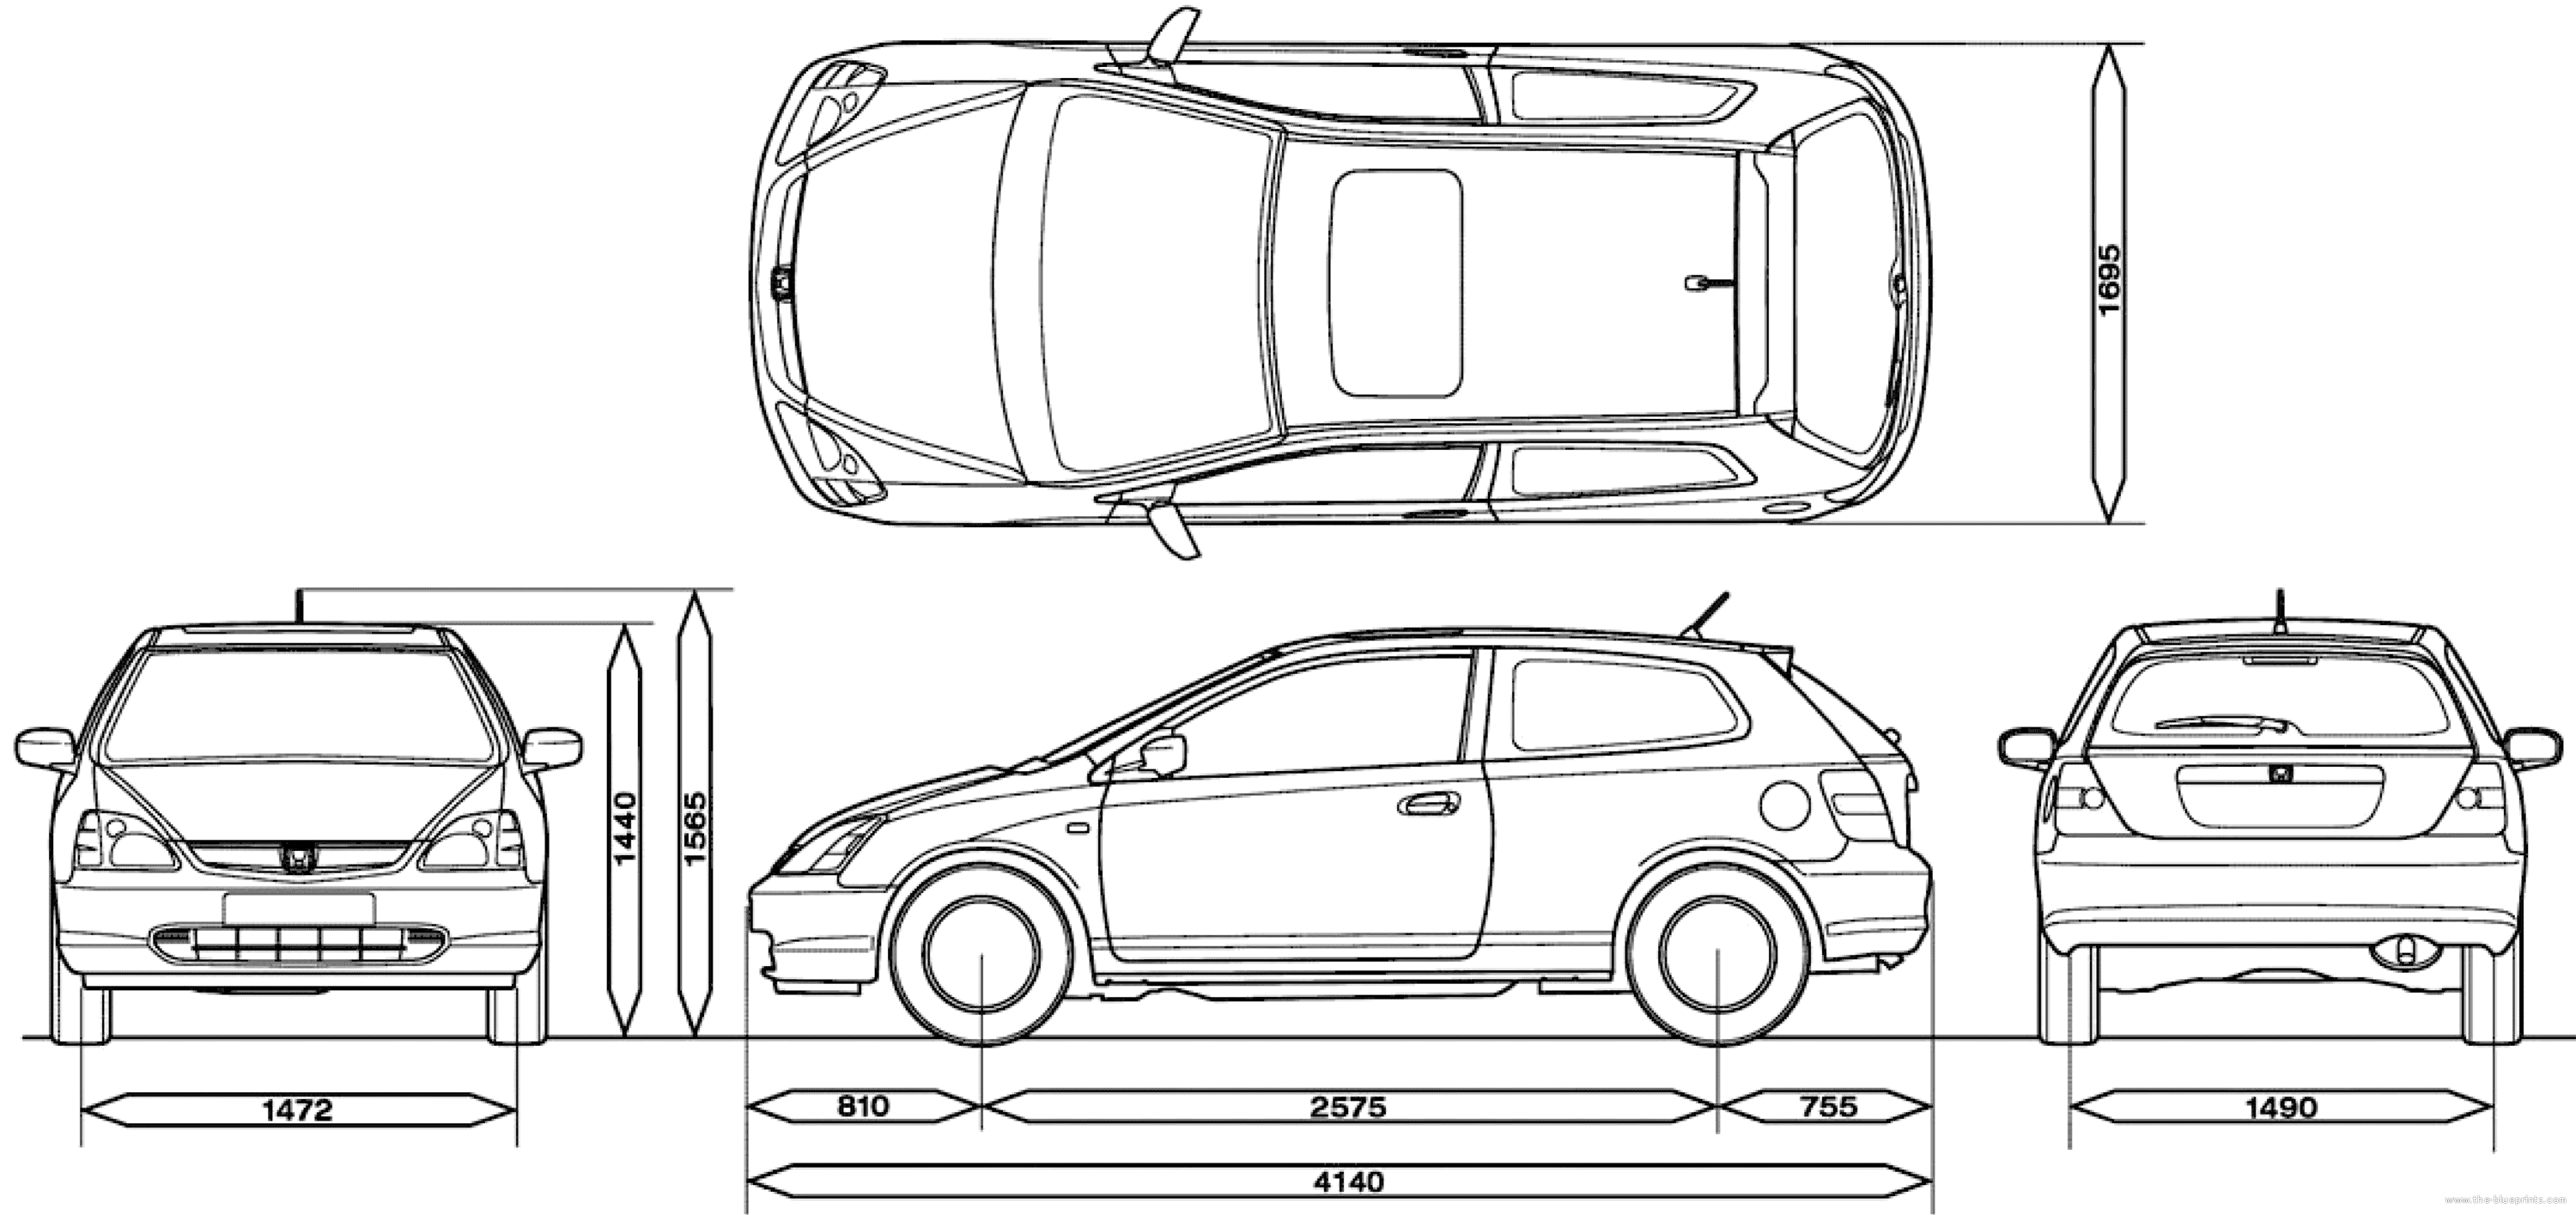 Lincoln Ls Coil Diagram Html in addition Ford 2 0 Ecoboost Engine moreover T13526432 6g72 con rod tightening torque moreover Ford V6 Ohv Engine likewise 96specs. on 4 6 liter ford engine specifications